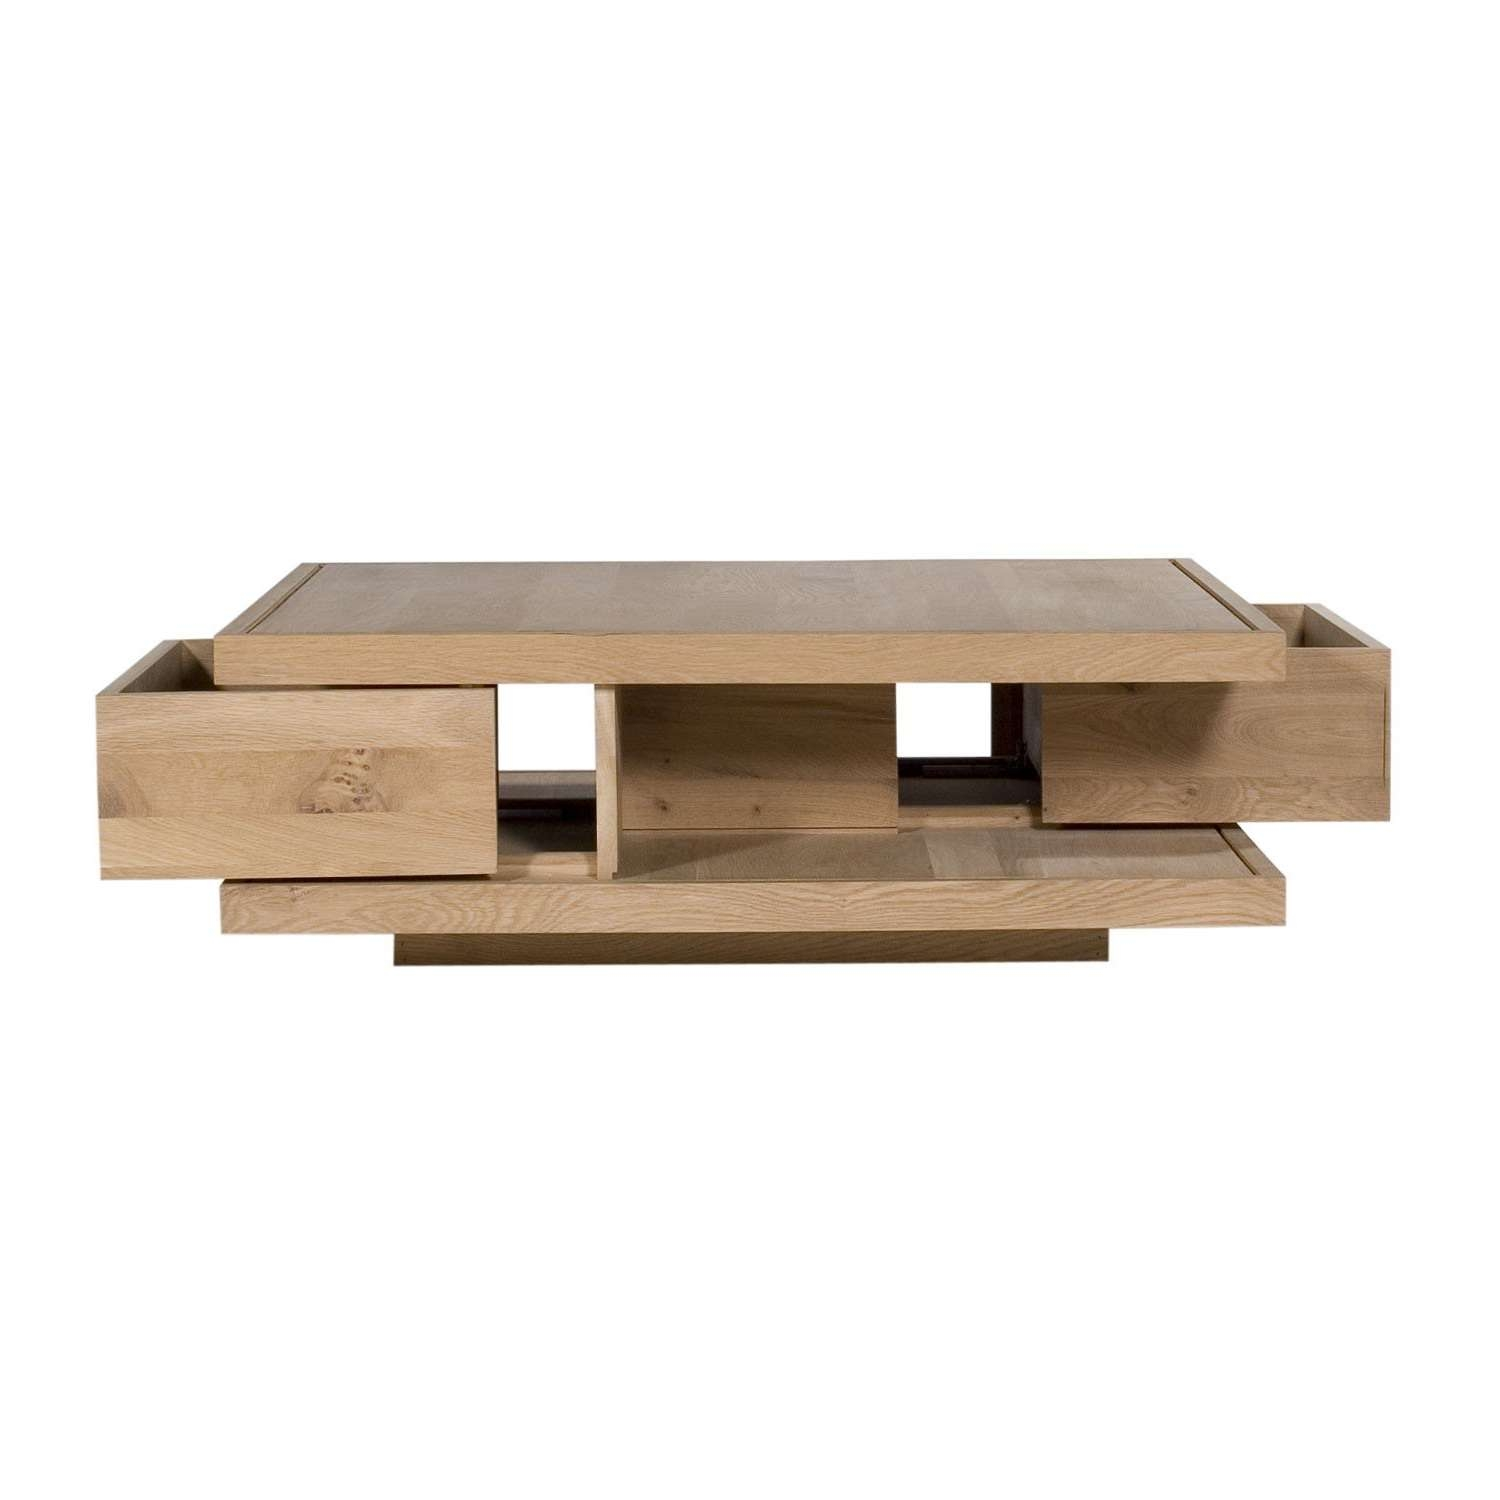 Preferred Contemporary Oak Coffee Table Pertaining To Ethnicraft Flat Oak Coffee Tables (View 16 of 20)